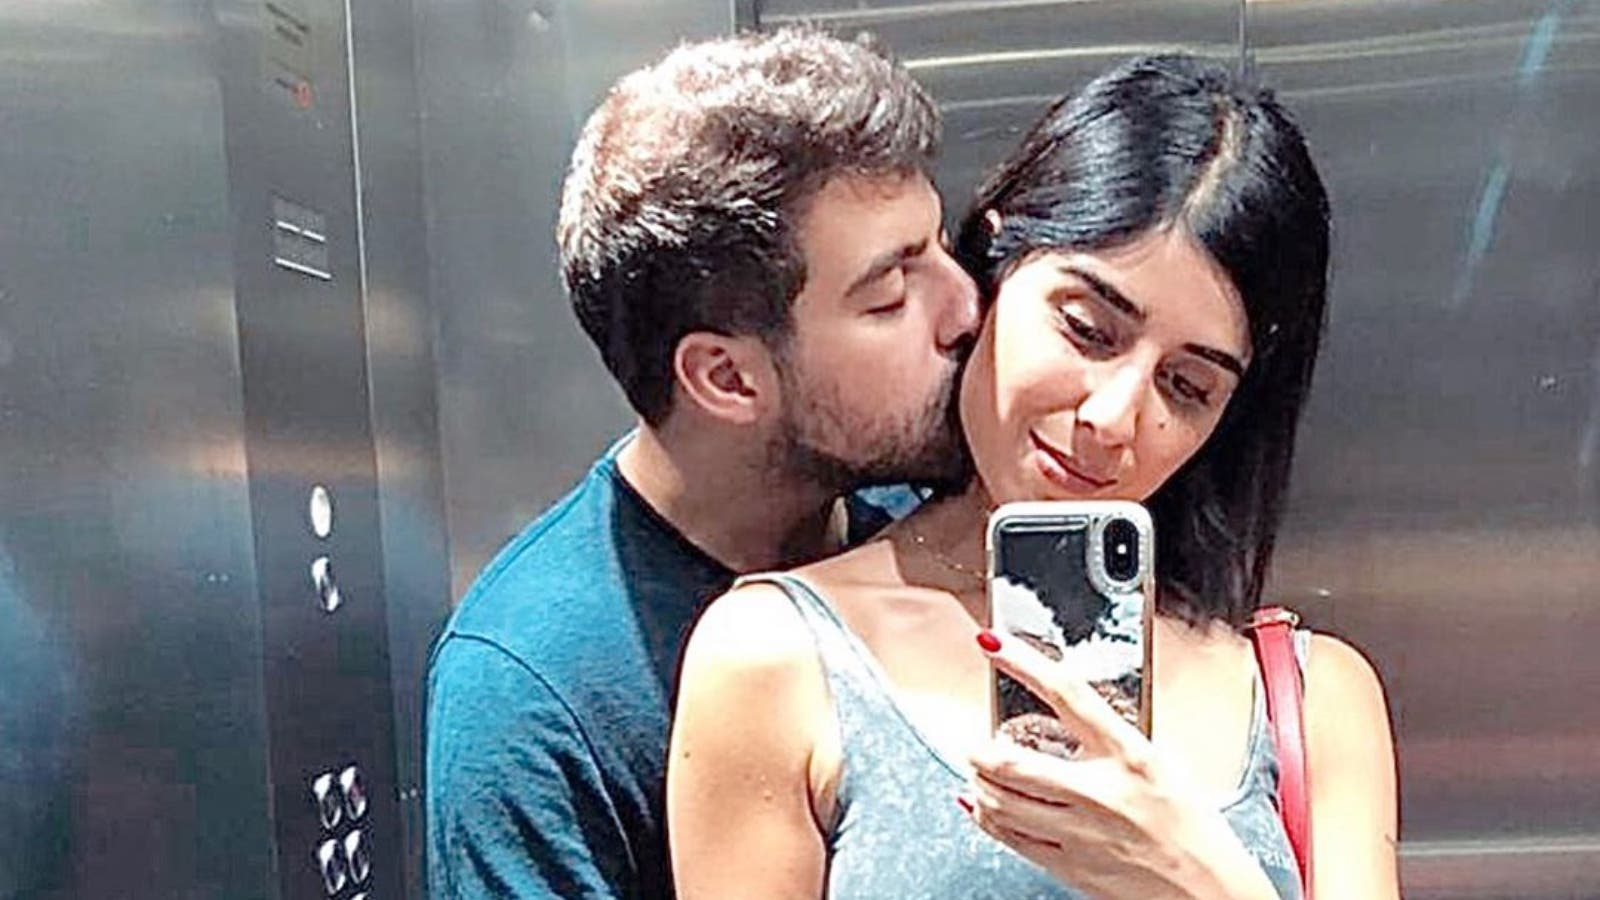 She S Muslim And He S Christian Zeina Makki And Nabil Khoury S Inter Religious Marriage Sparks Controversy Al Bawaba